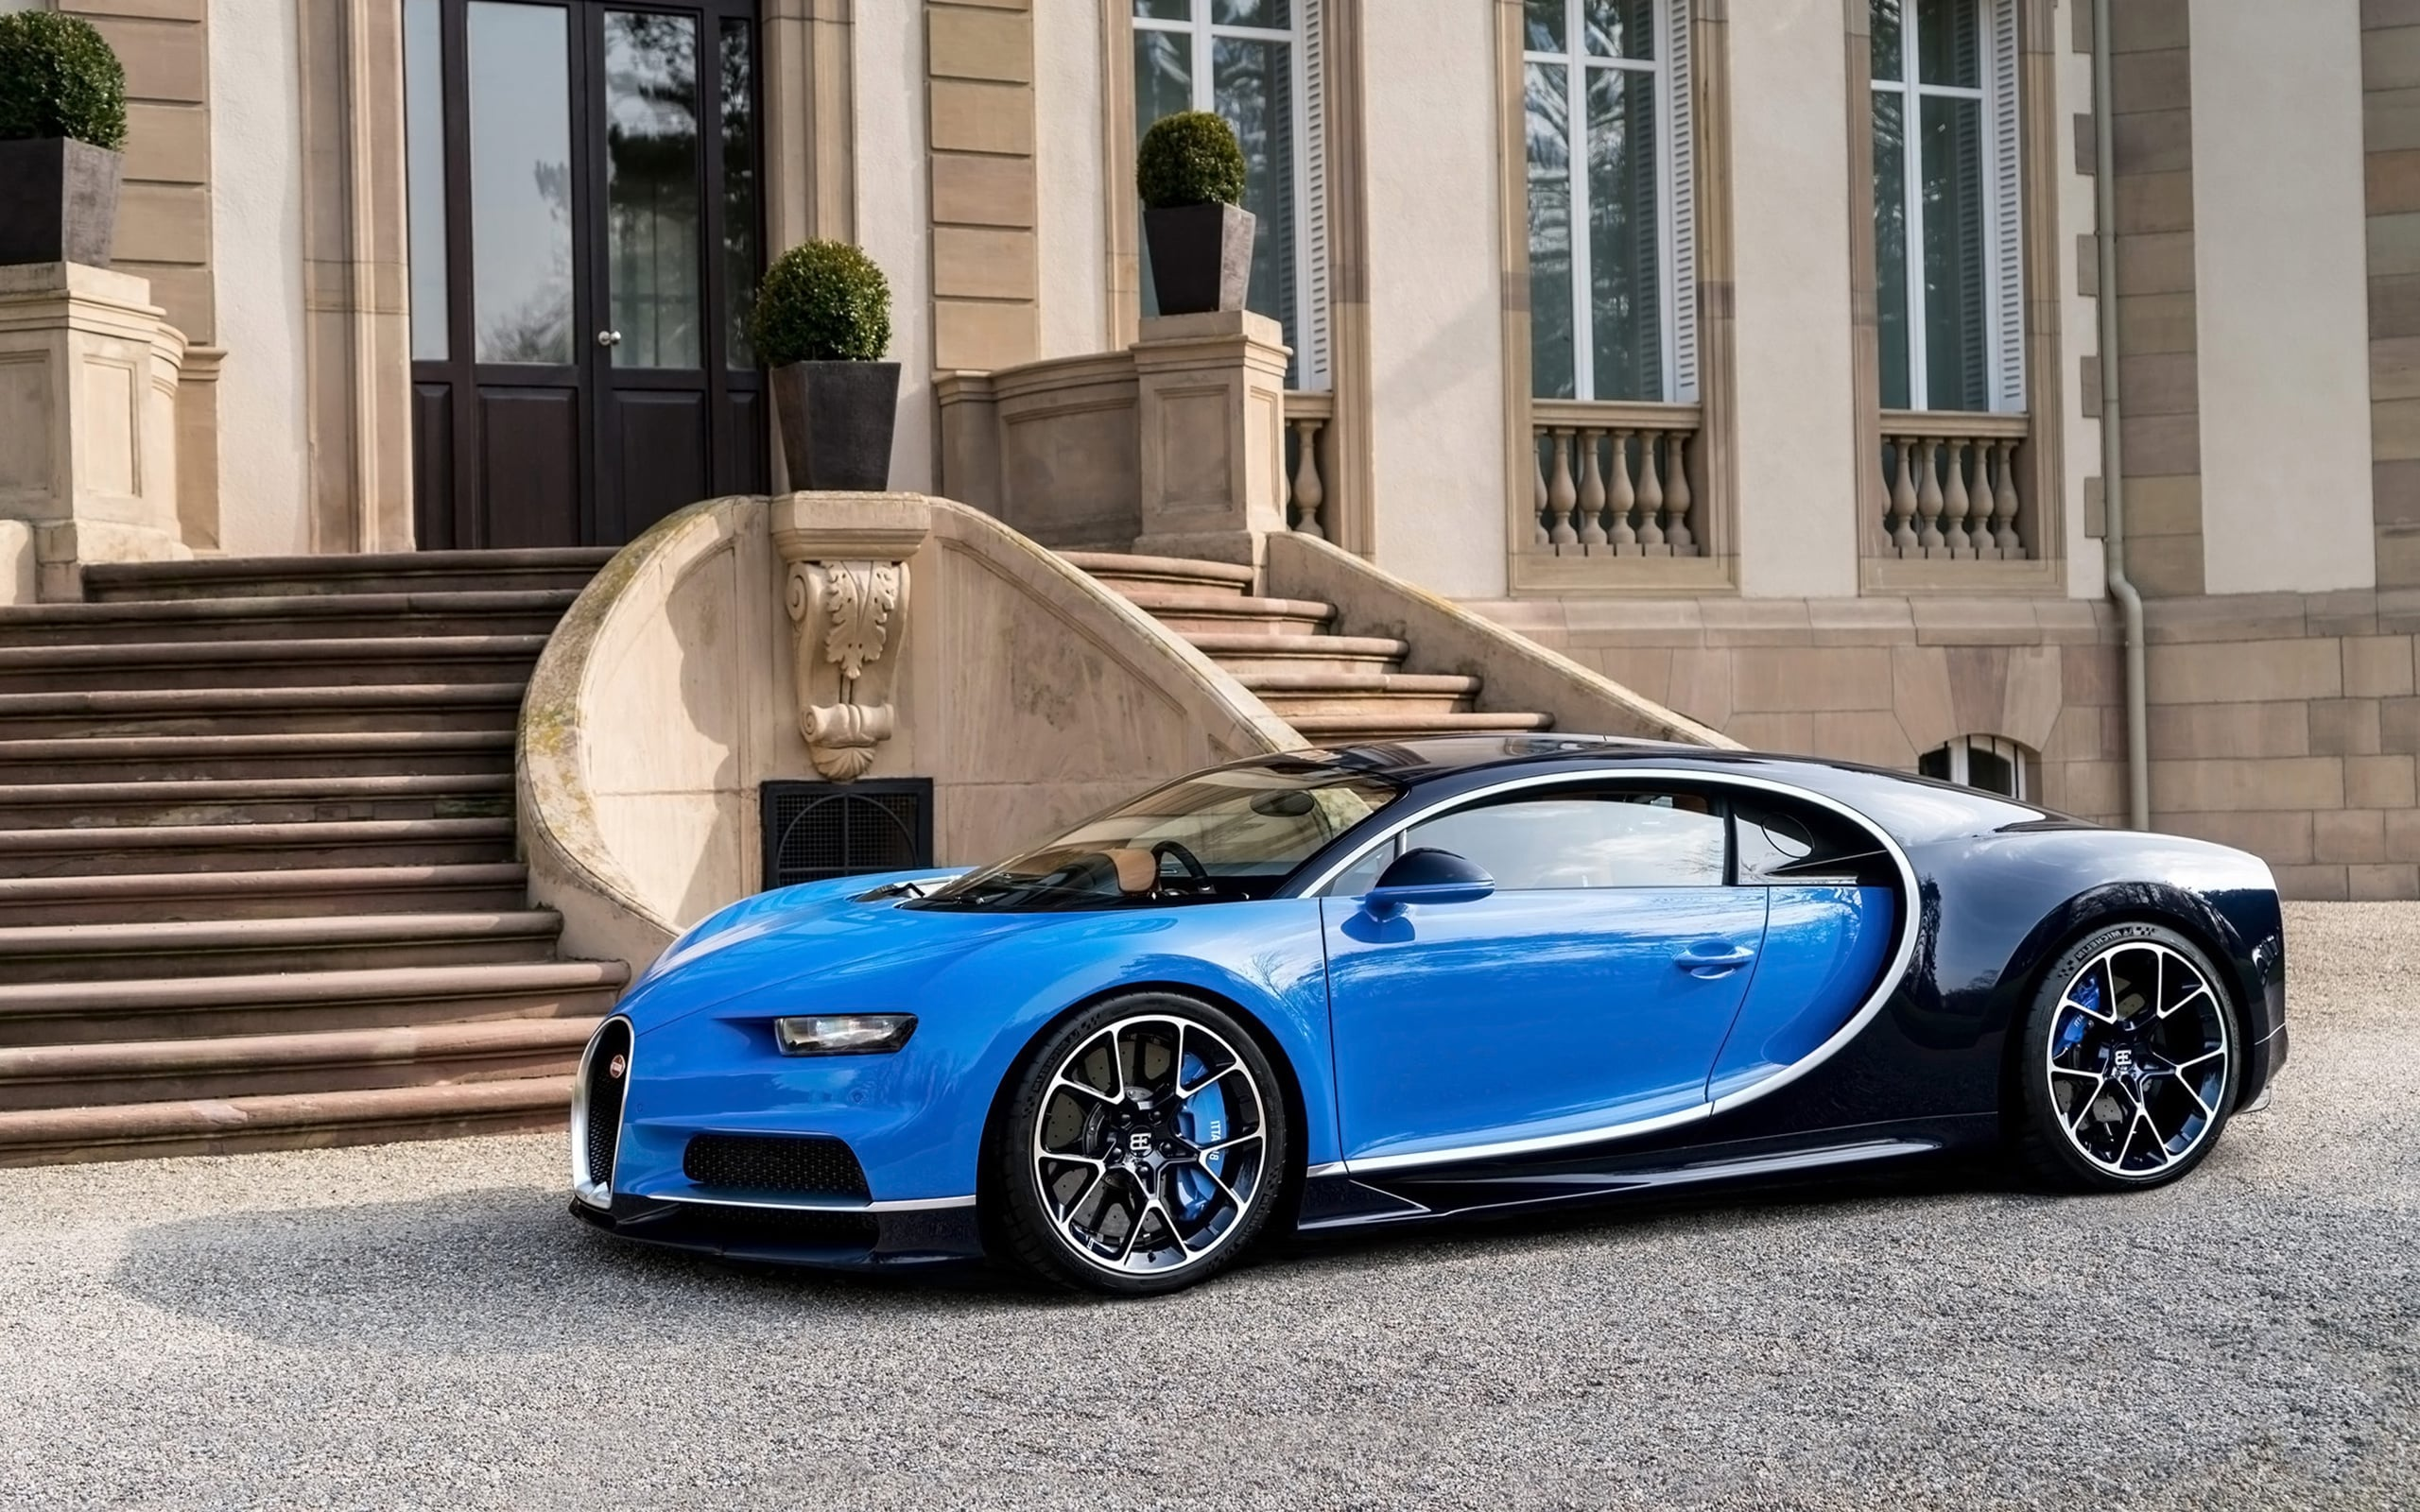 What You Should Know About The 2017 Bugatti Chiron